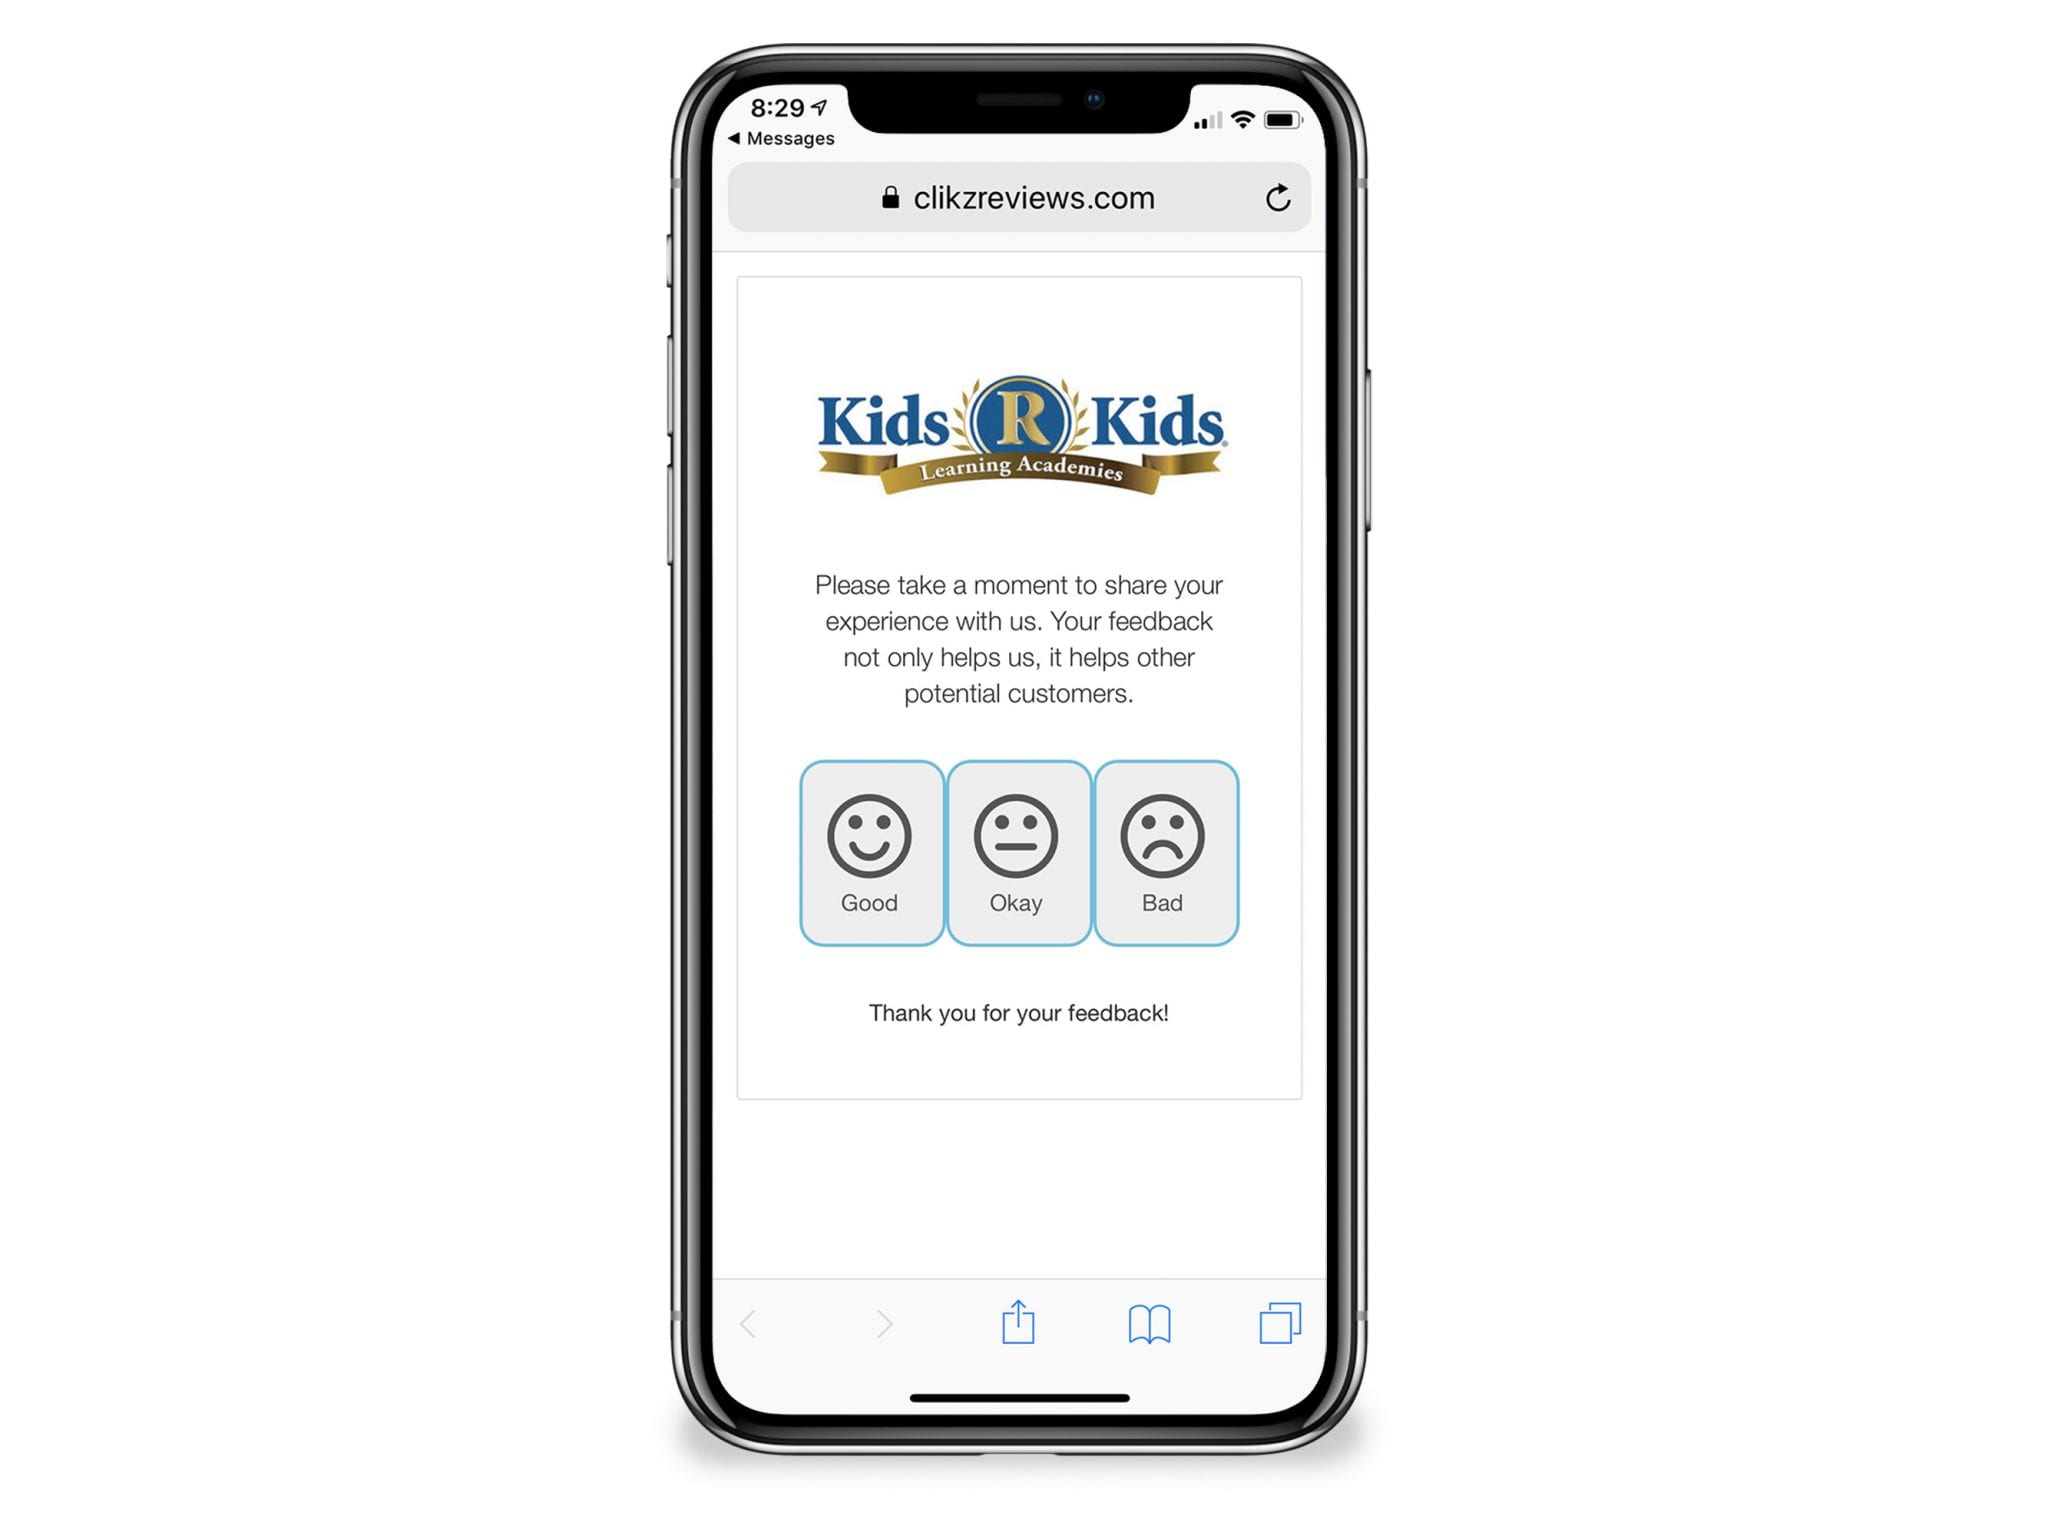 Kids R Kids iphone review page web